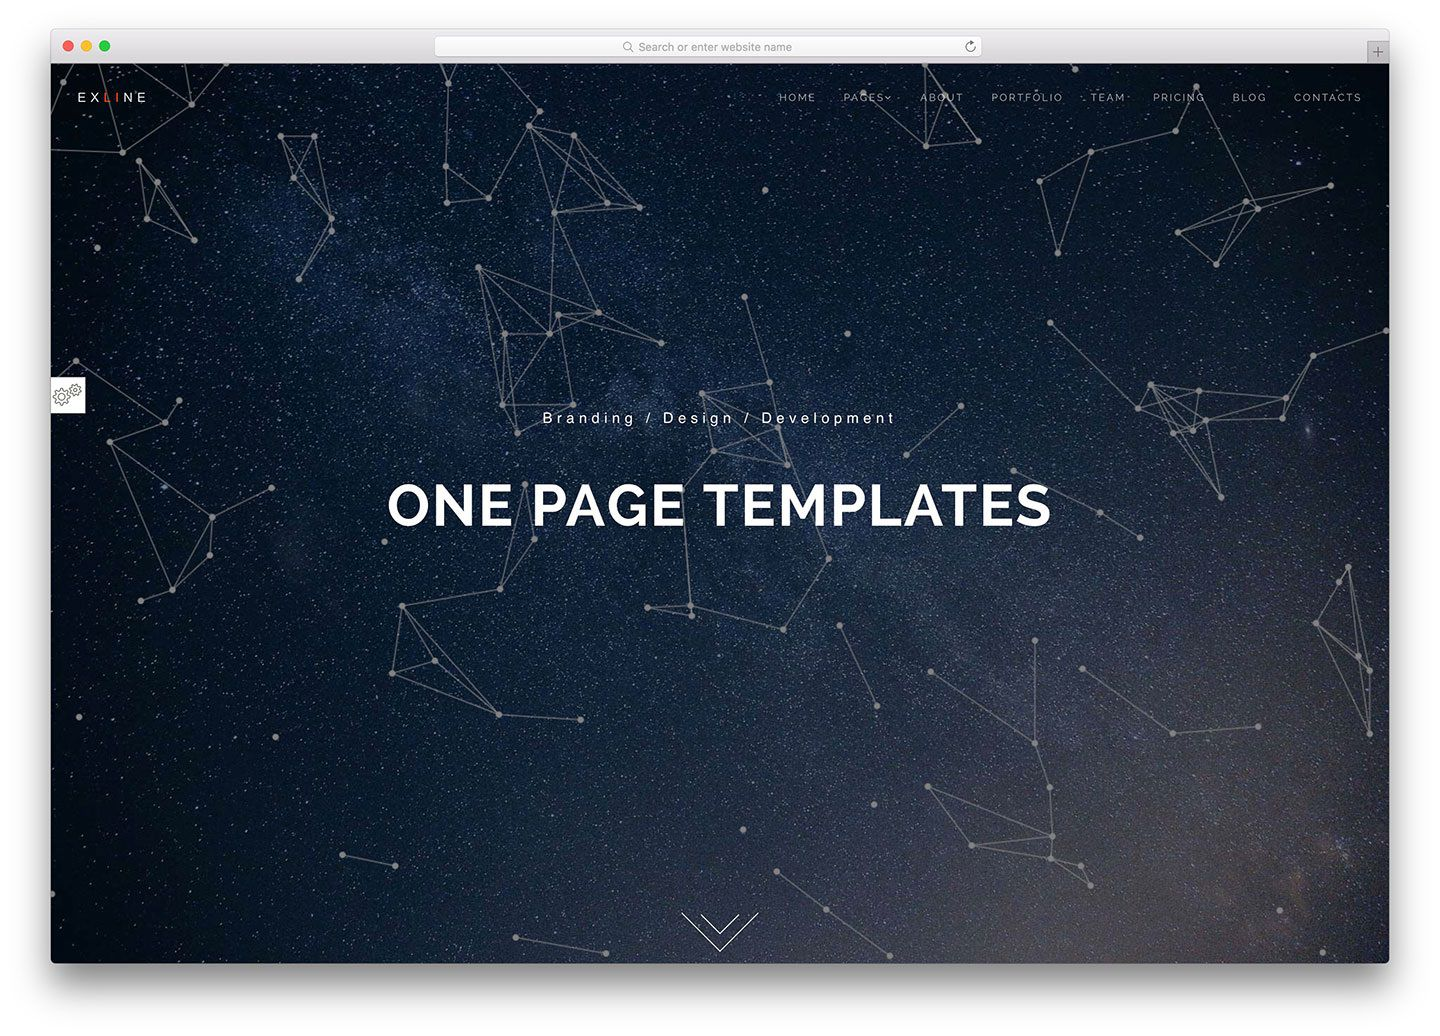 003 Outstanding One Page Website Template Html5 Responsive Free Download Concept Full